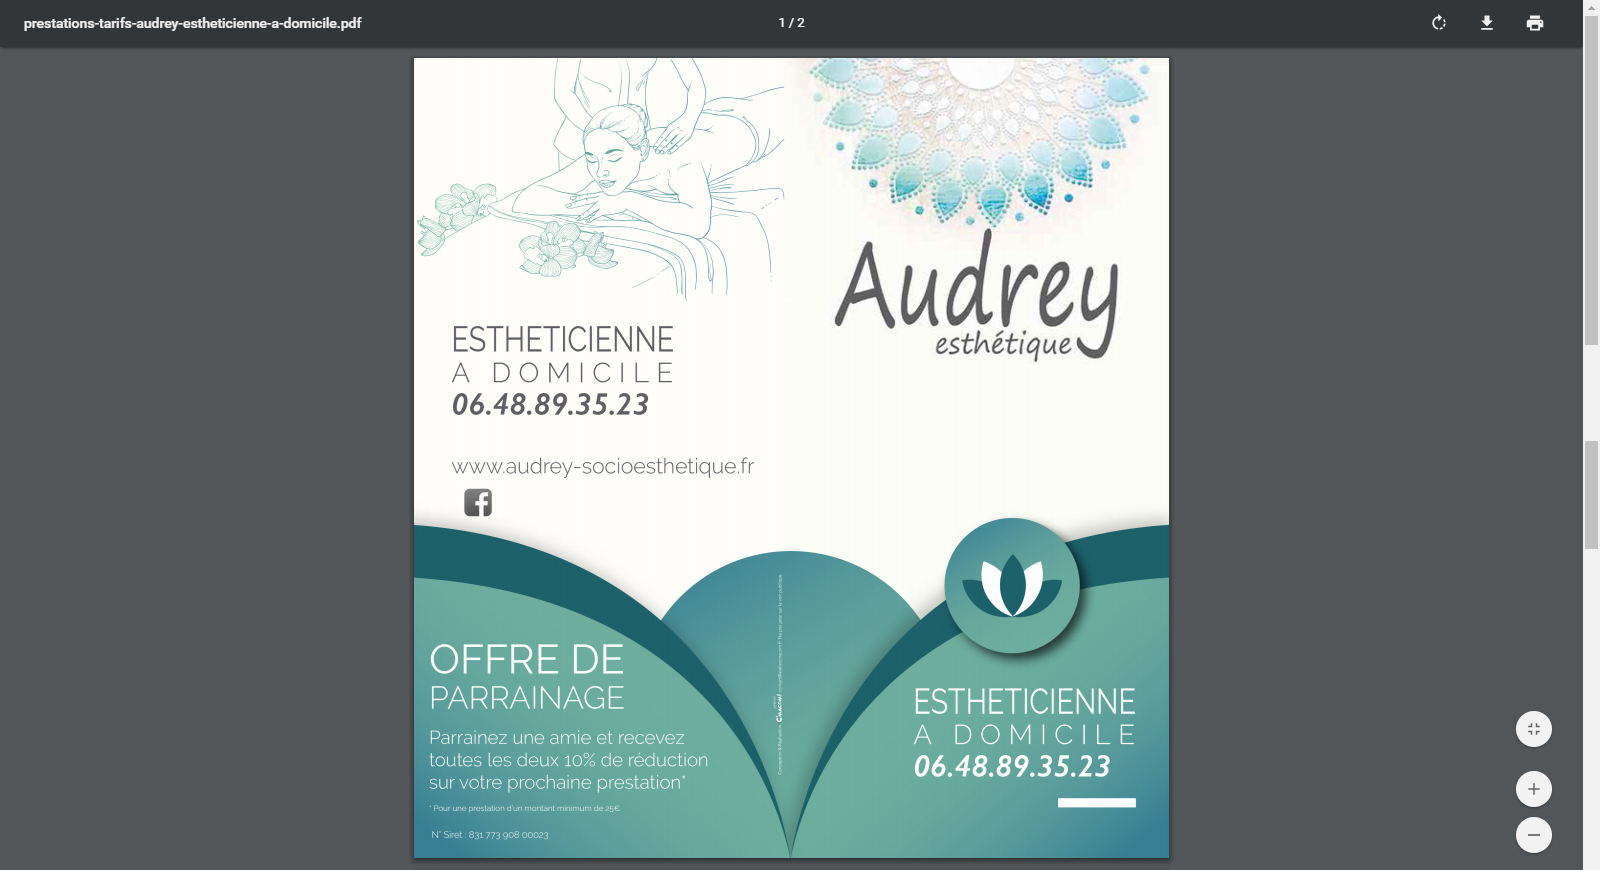 audrey-socio-esthetique-screen17